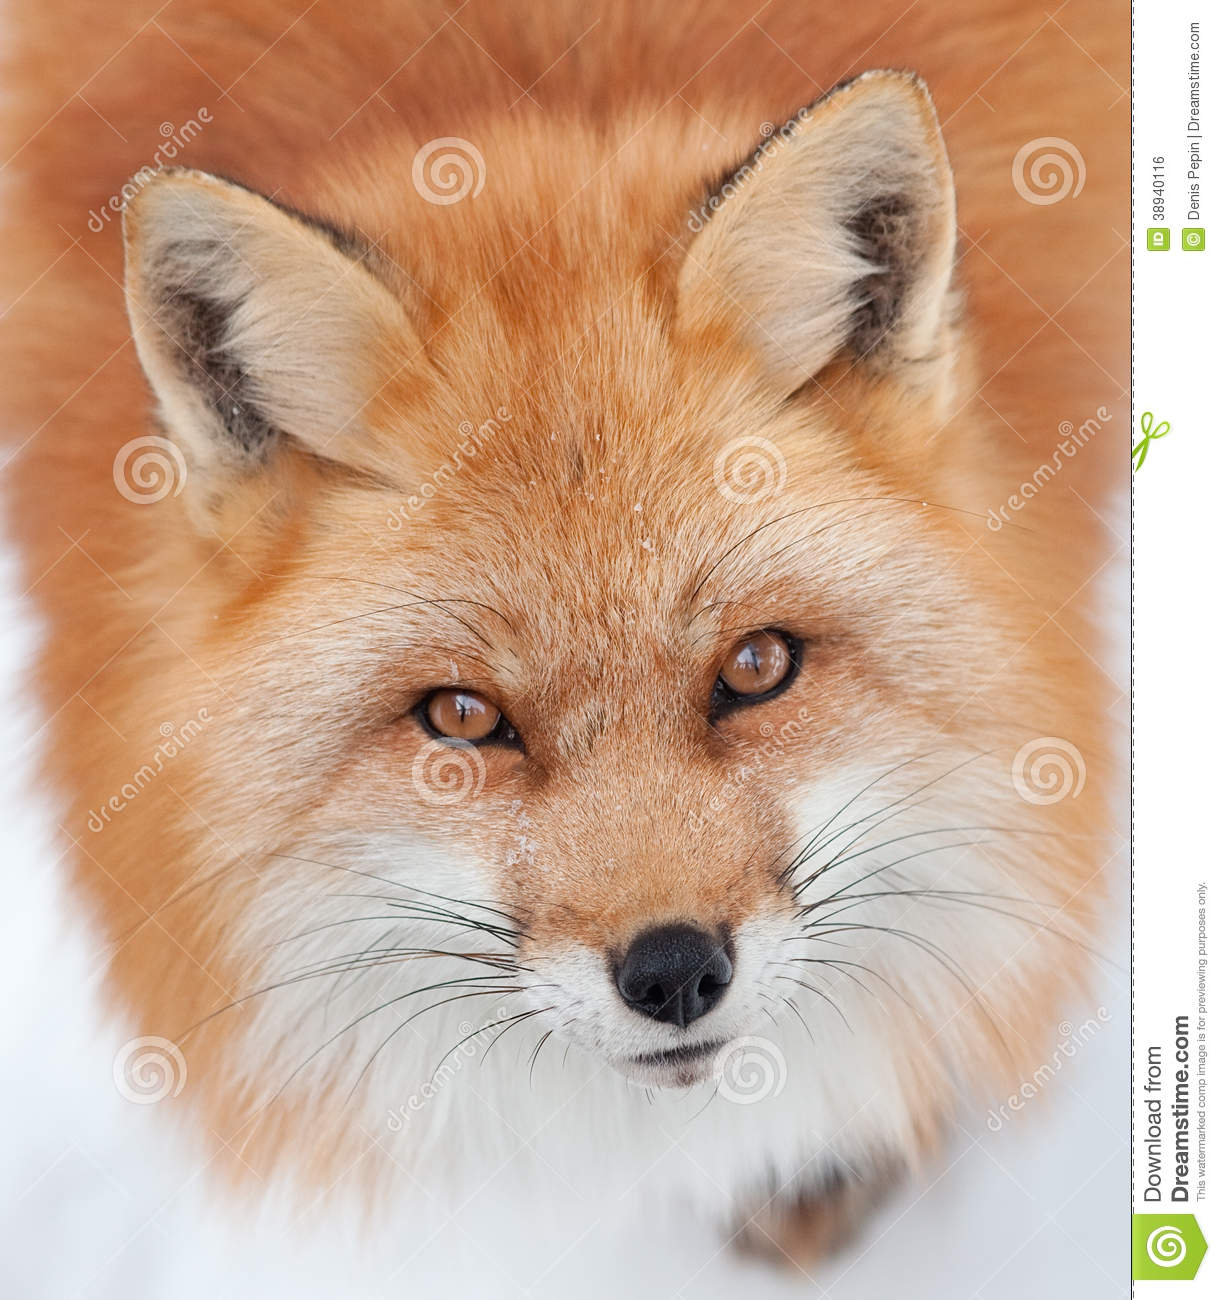 Young Red Fox Looking Up At The Camera Stock Photo - Image ...